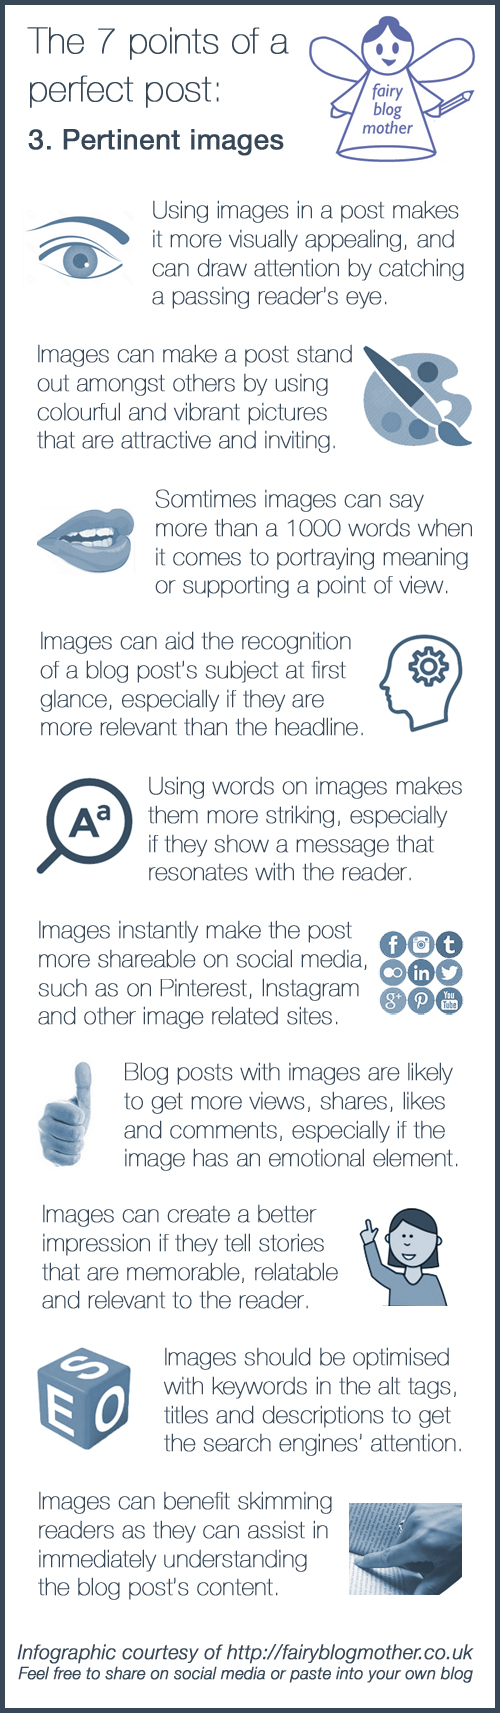 How to use images effectively to attract readers to your post